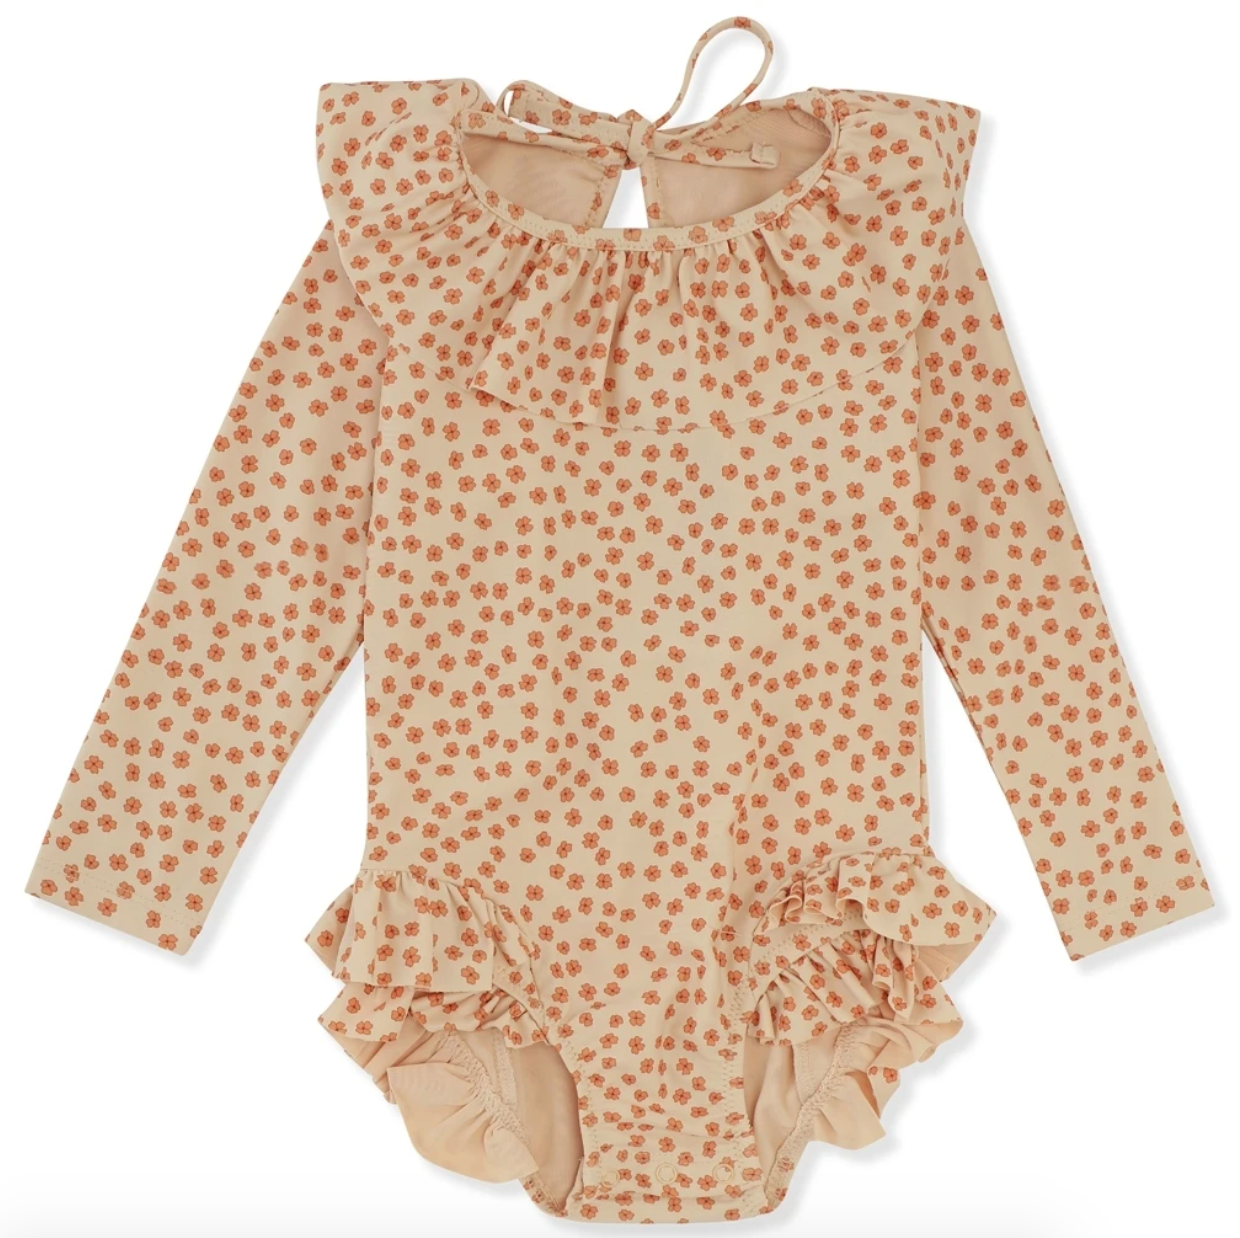 Buttercup flowers on a ruffled long-sleeved swimsuit